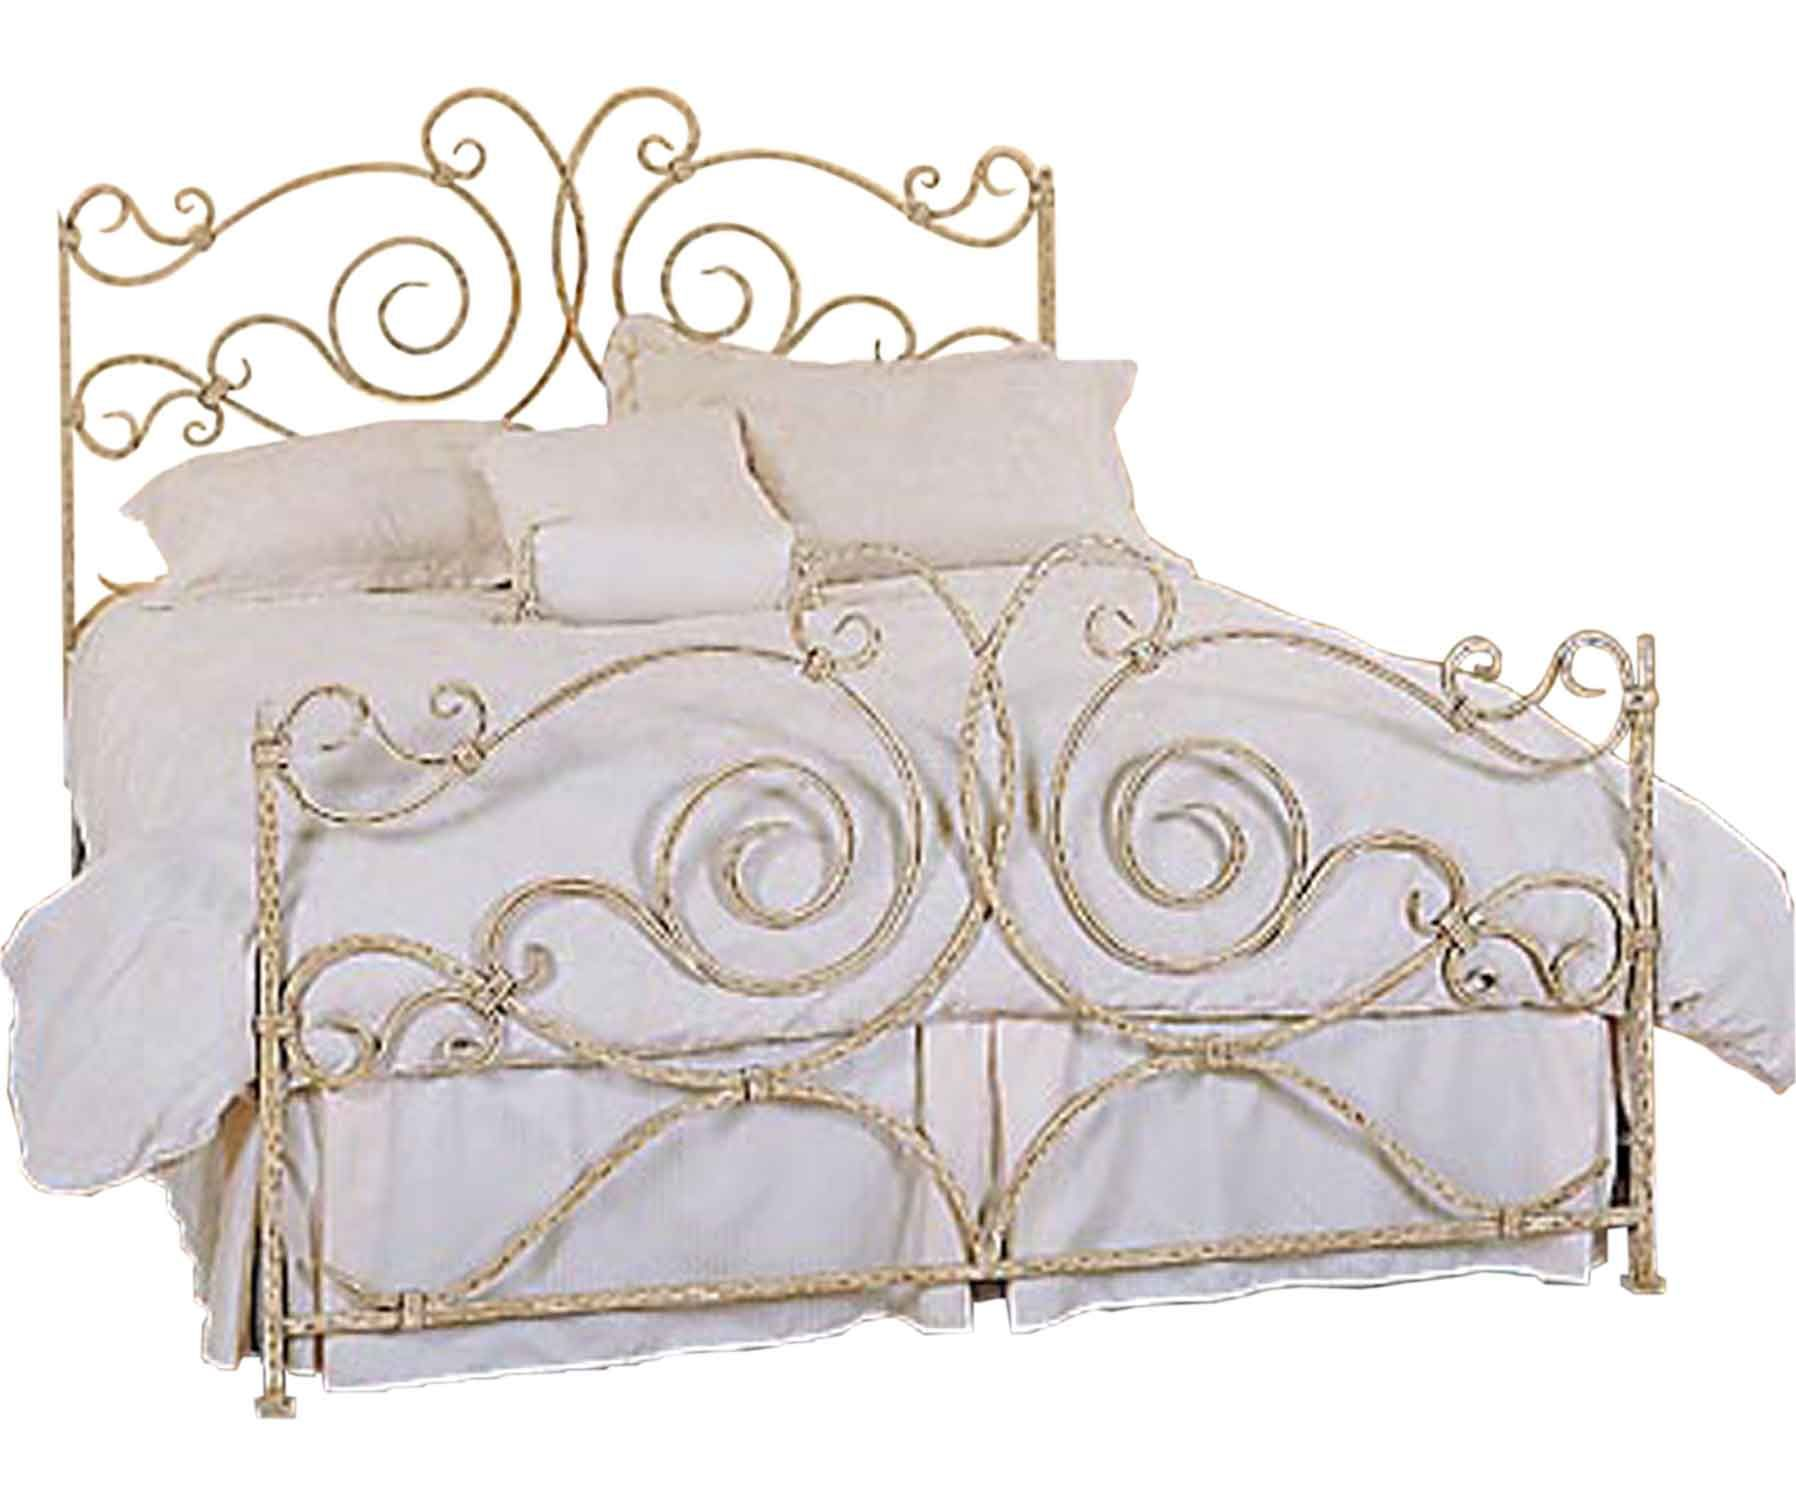 Antique Wrought Iron Bed Frames Vintage White Wrought Iron Bedr